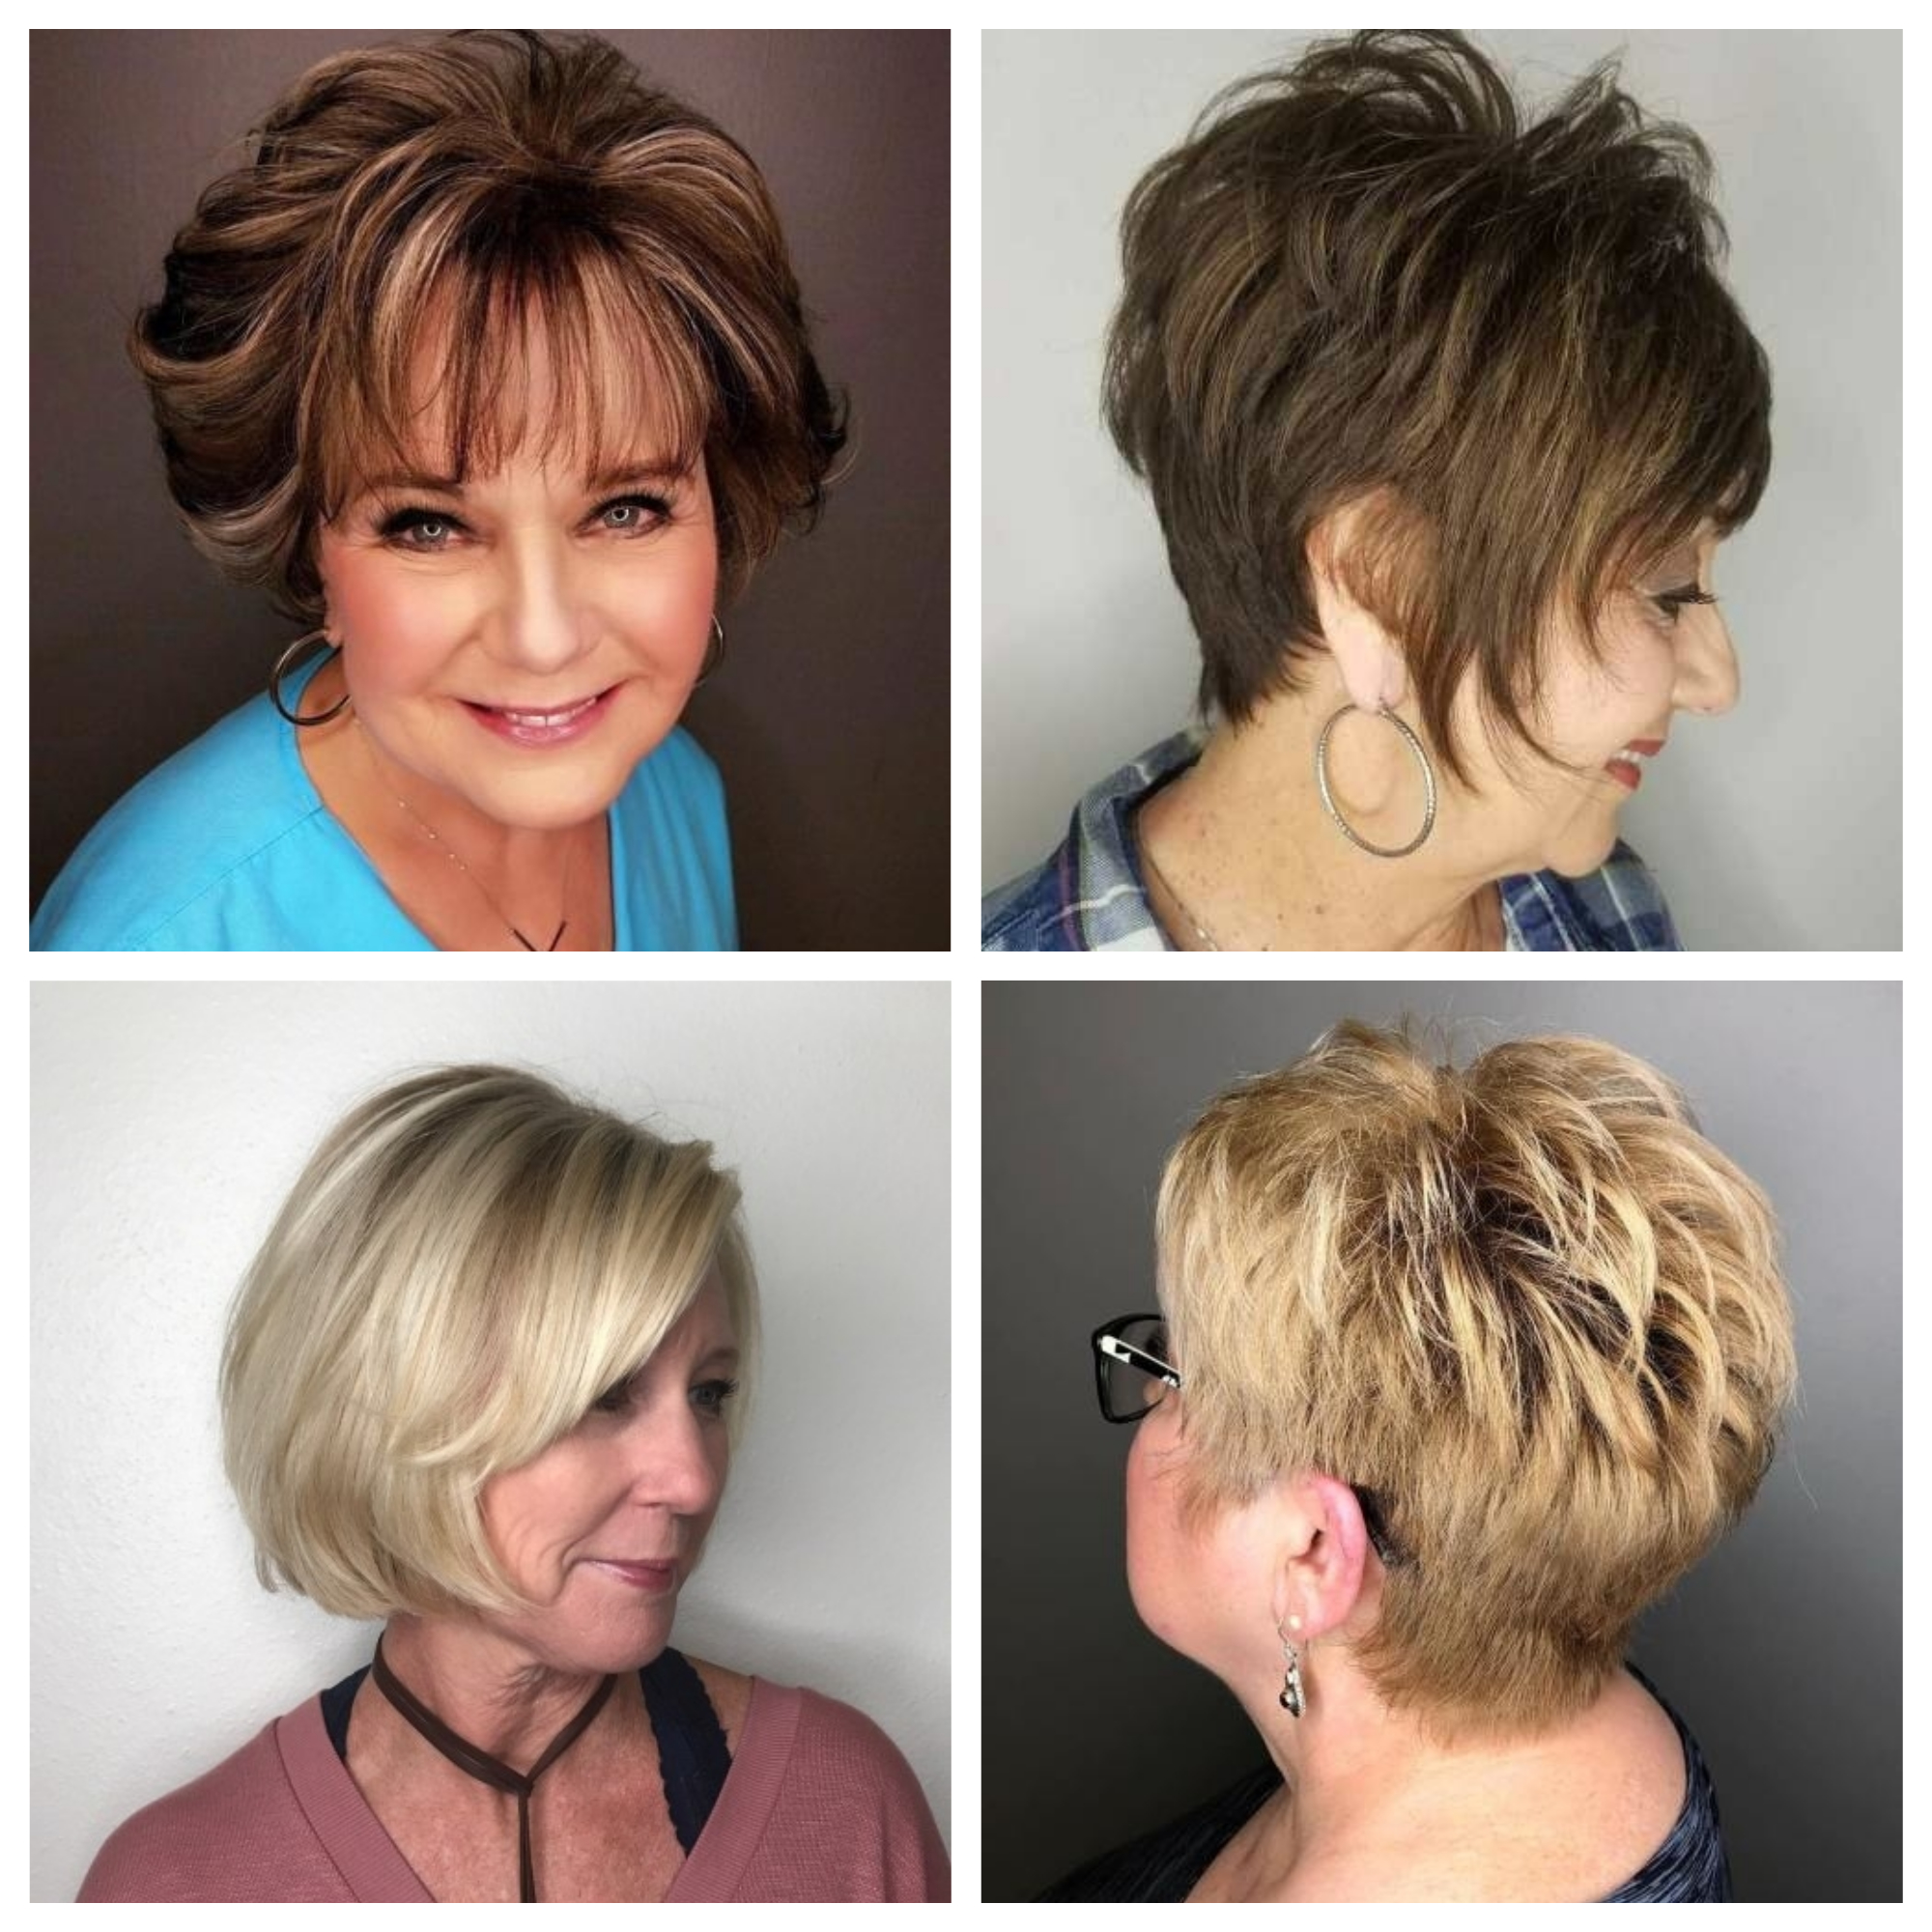 Short Hairstyles For Women Over 60 2019 Haircuts